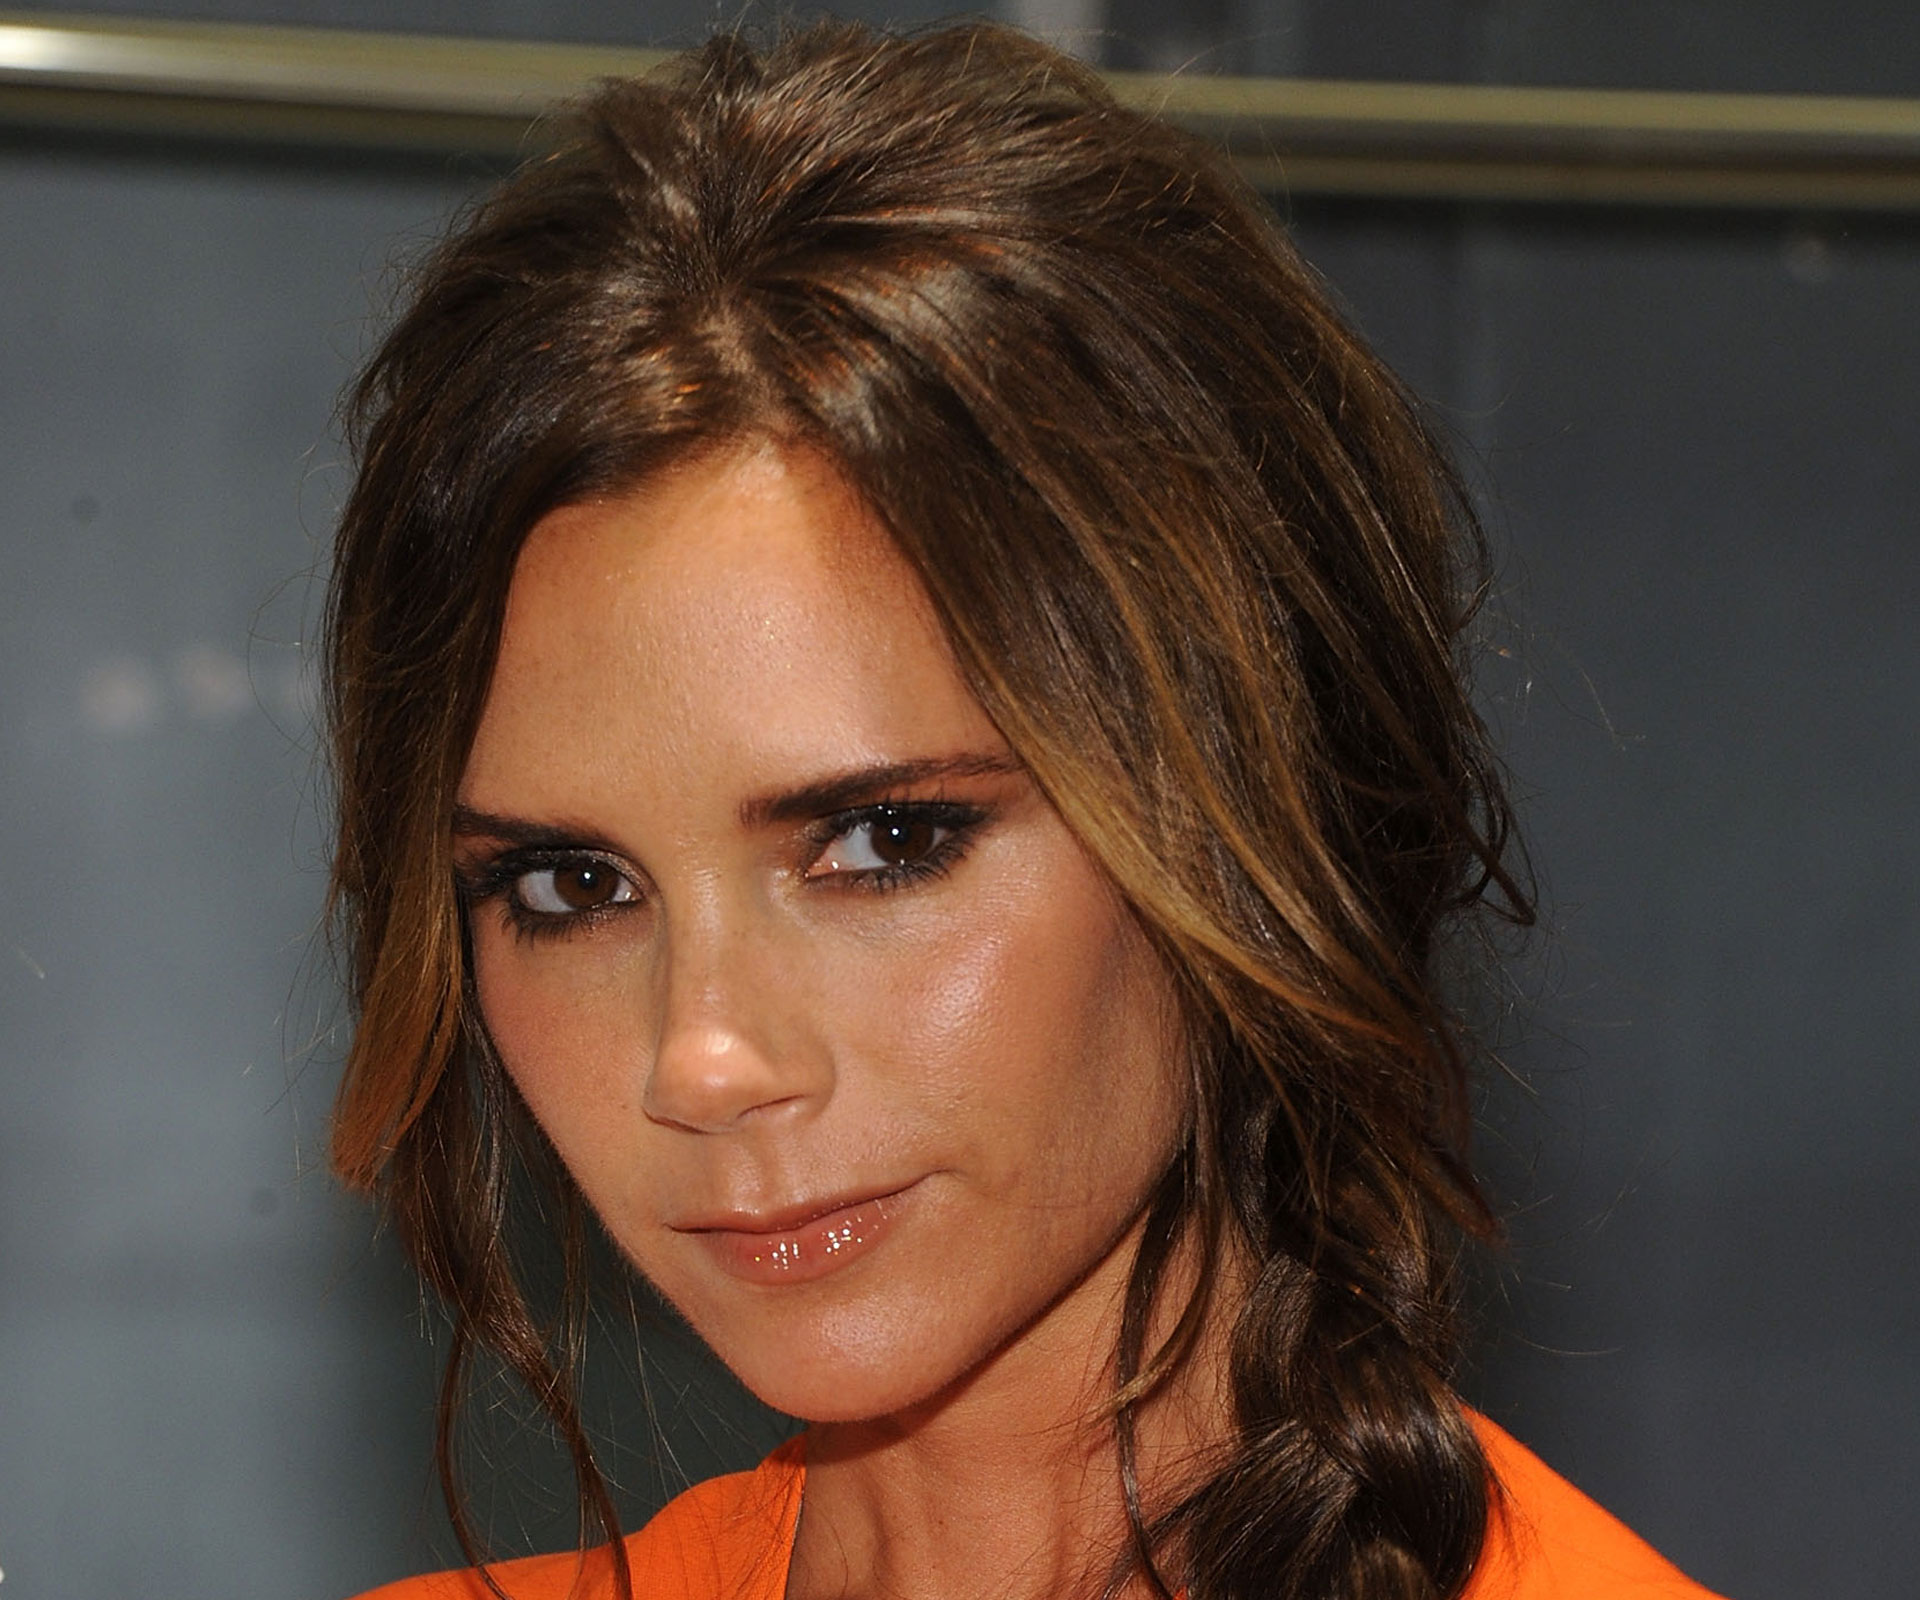 Victoria Beckham to launch limited-edition makeup line with Estee Lauder